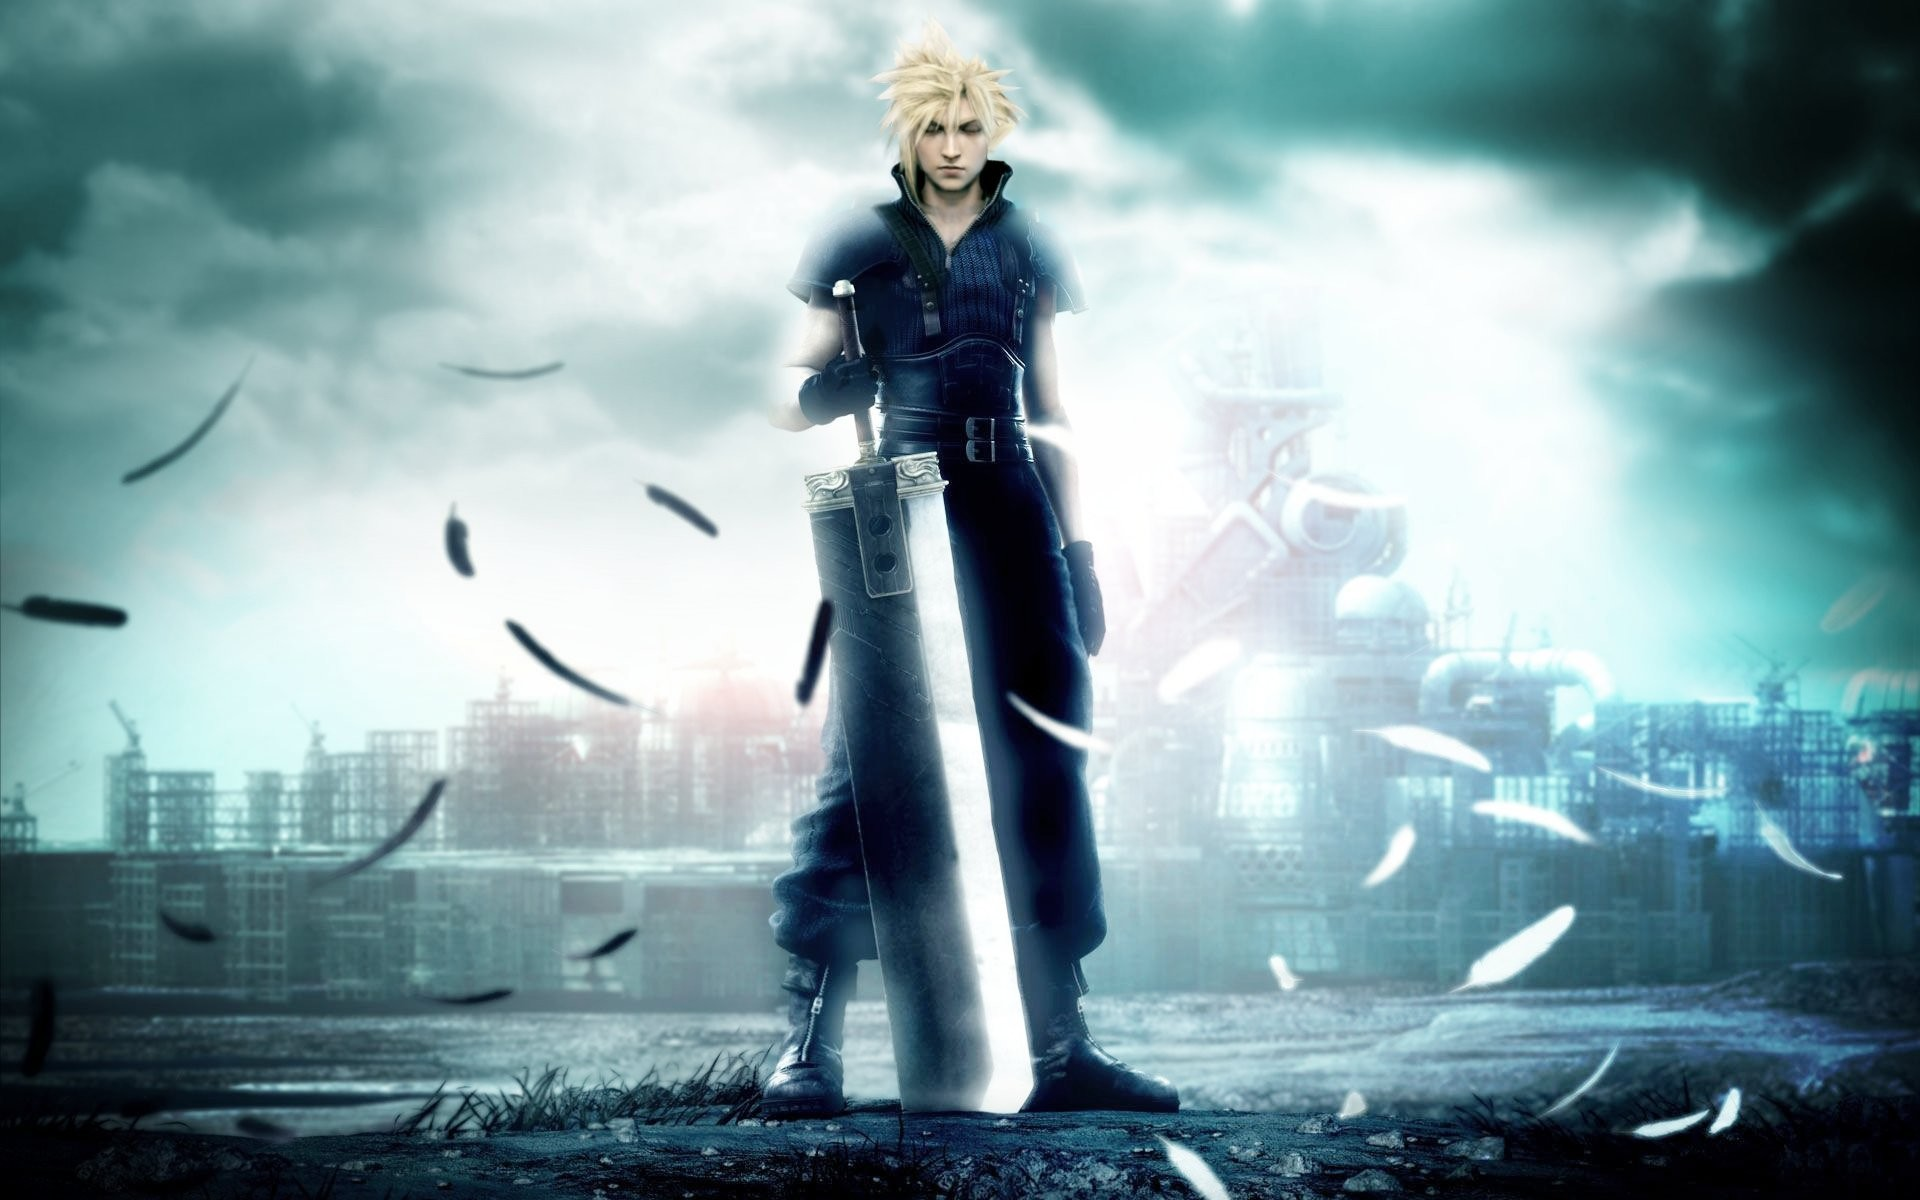 1920x1200 Filme - Final Fantasy VII: Advent Children Final Fantasy Wallpaper